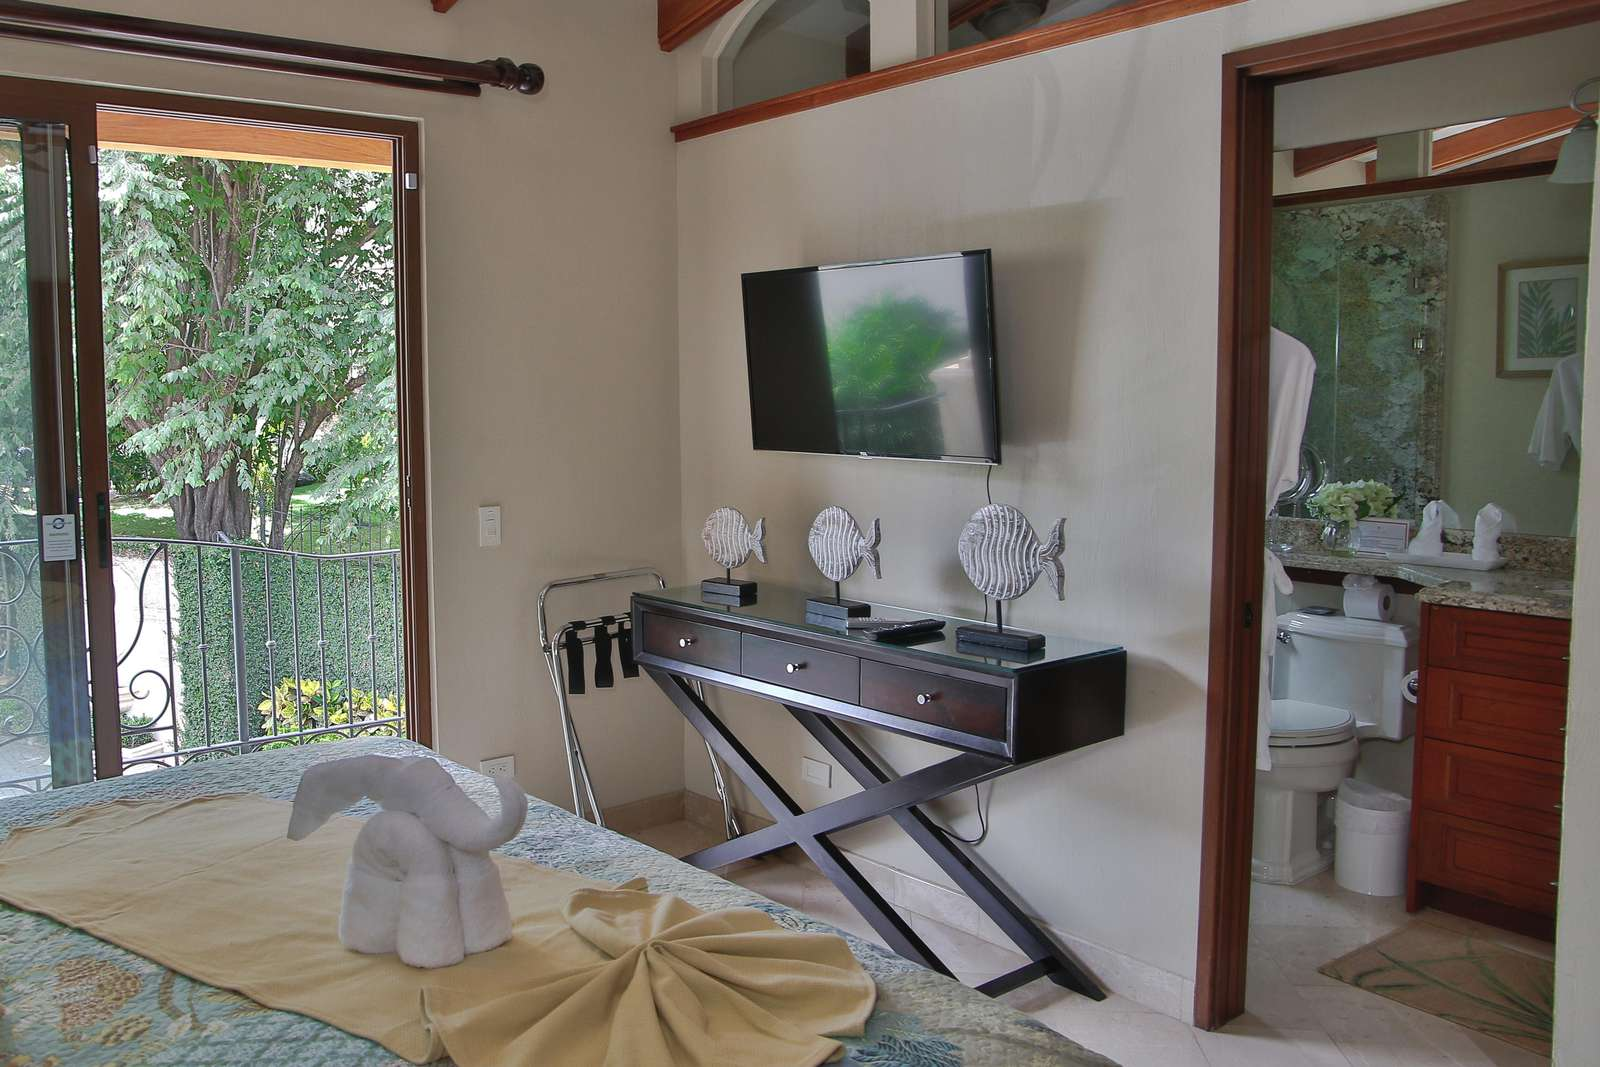 Guest bedroom, King bed plus loft area with full size bed, private bathroom